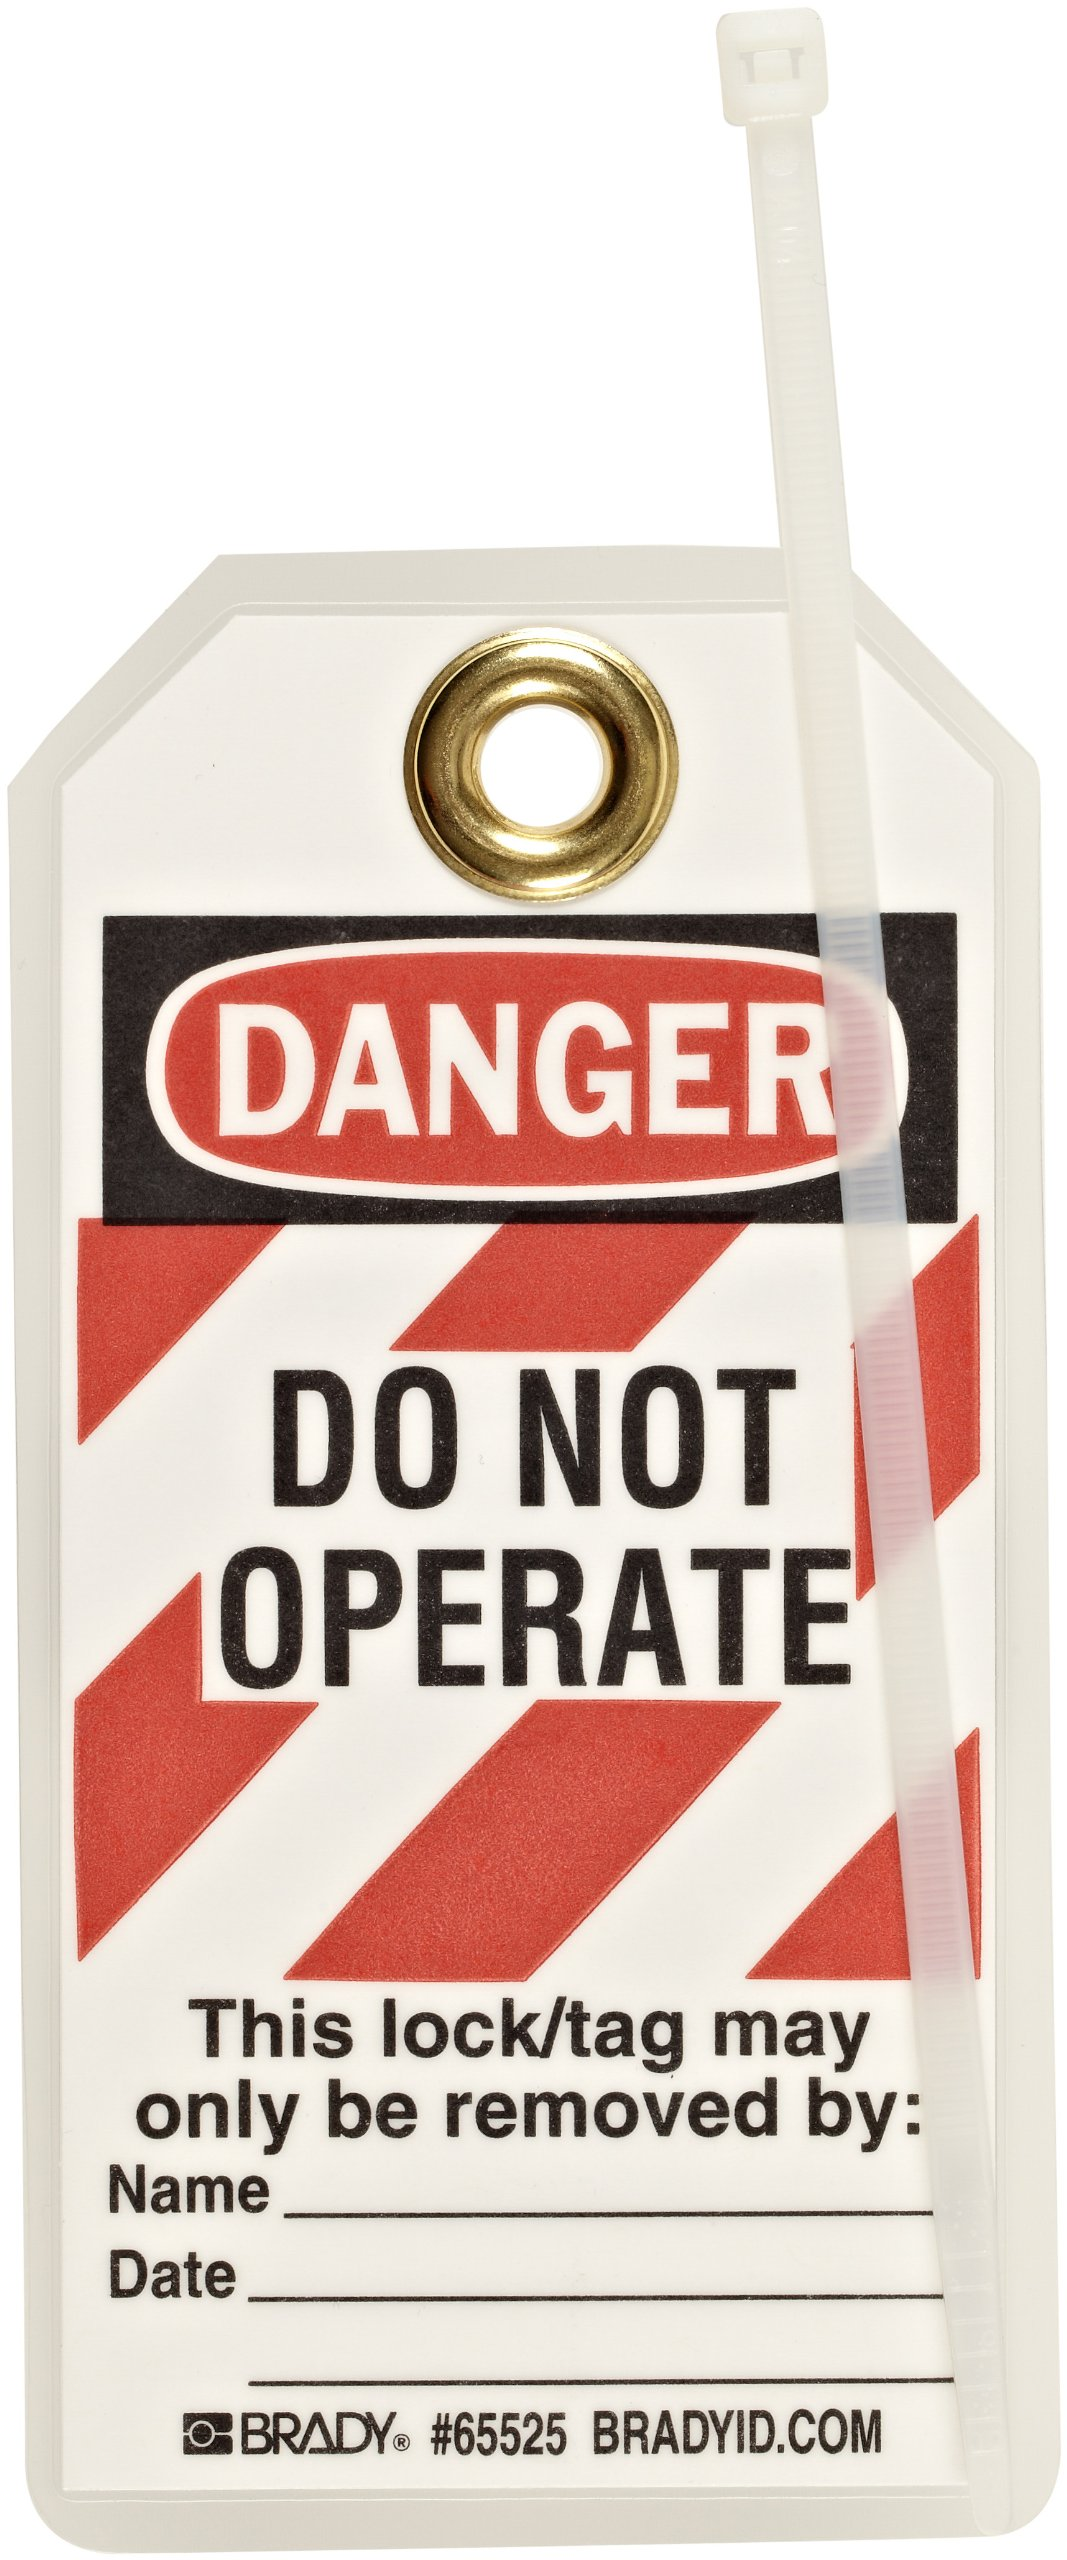 Brady High-Visibility ''Danger - Locked Out - Only the Individual'' Tag, Heavy Duty Polyester, 5-1/2'' Height, 3'' Width (Pack of 25)